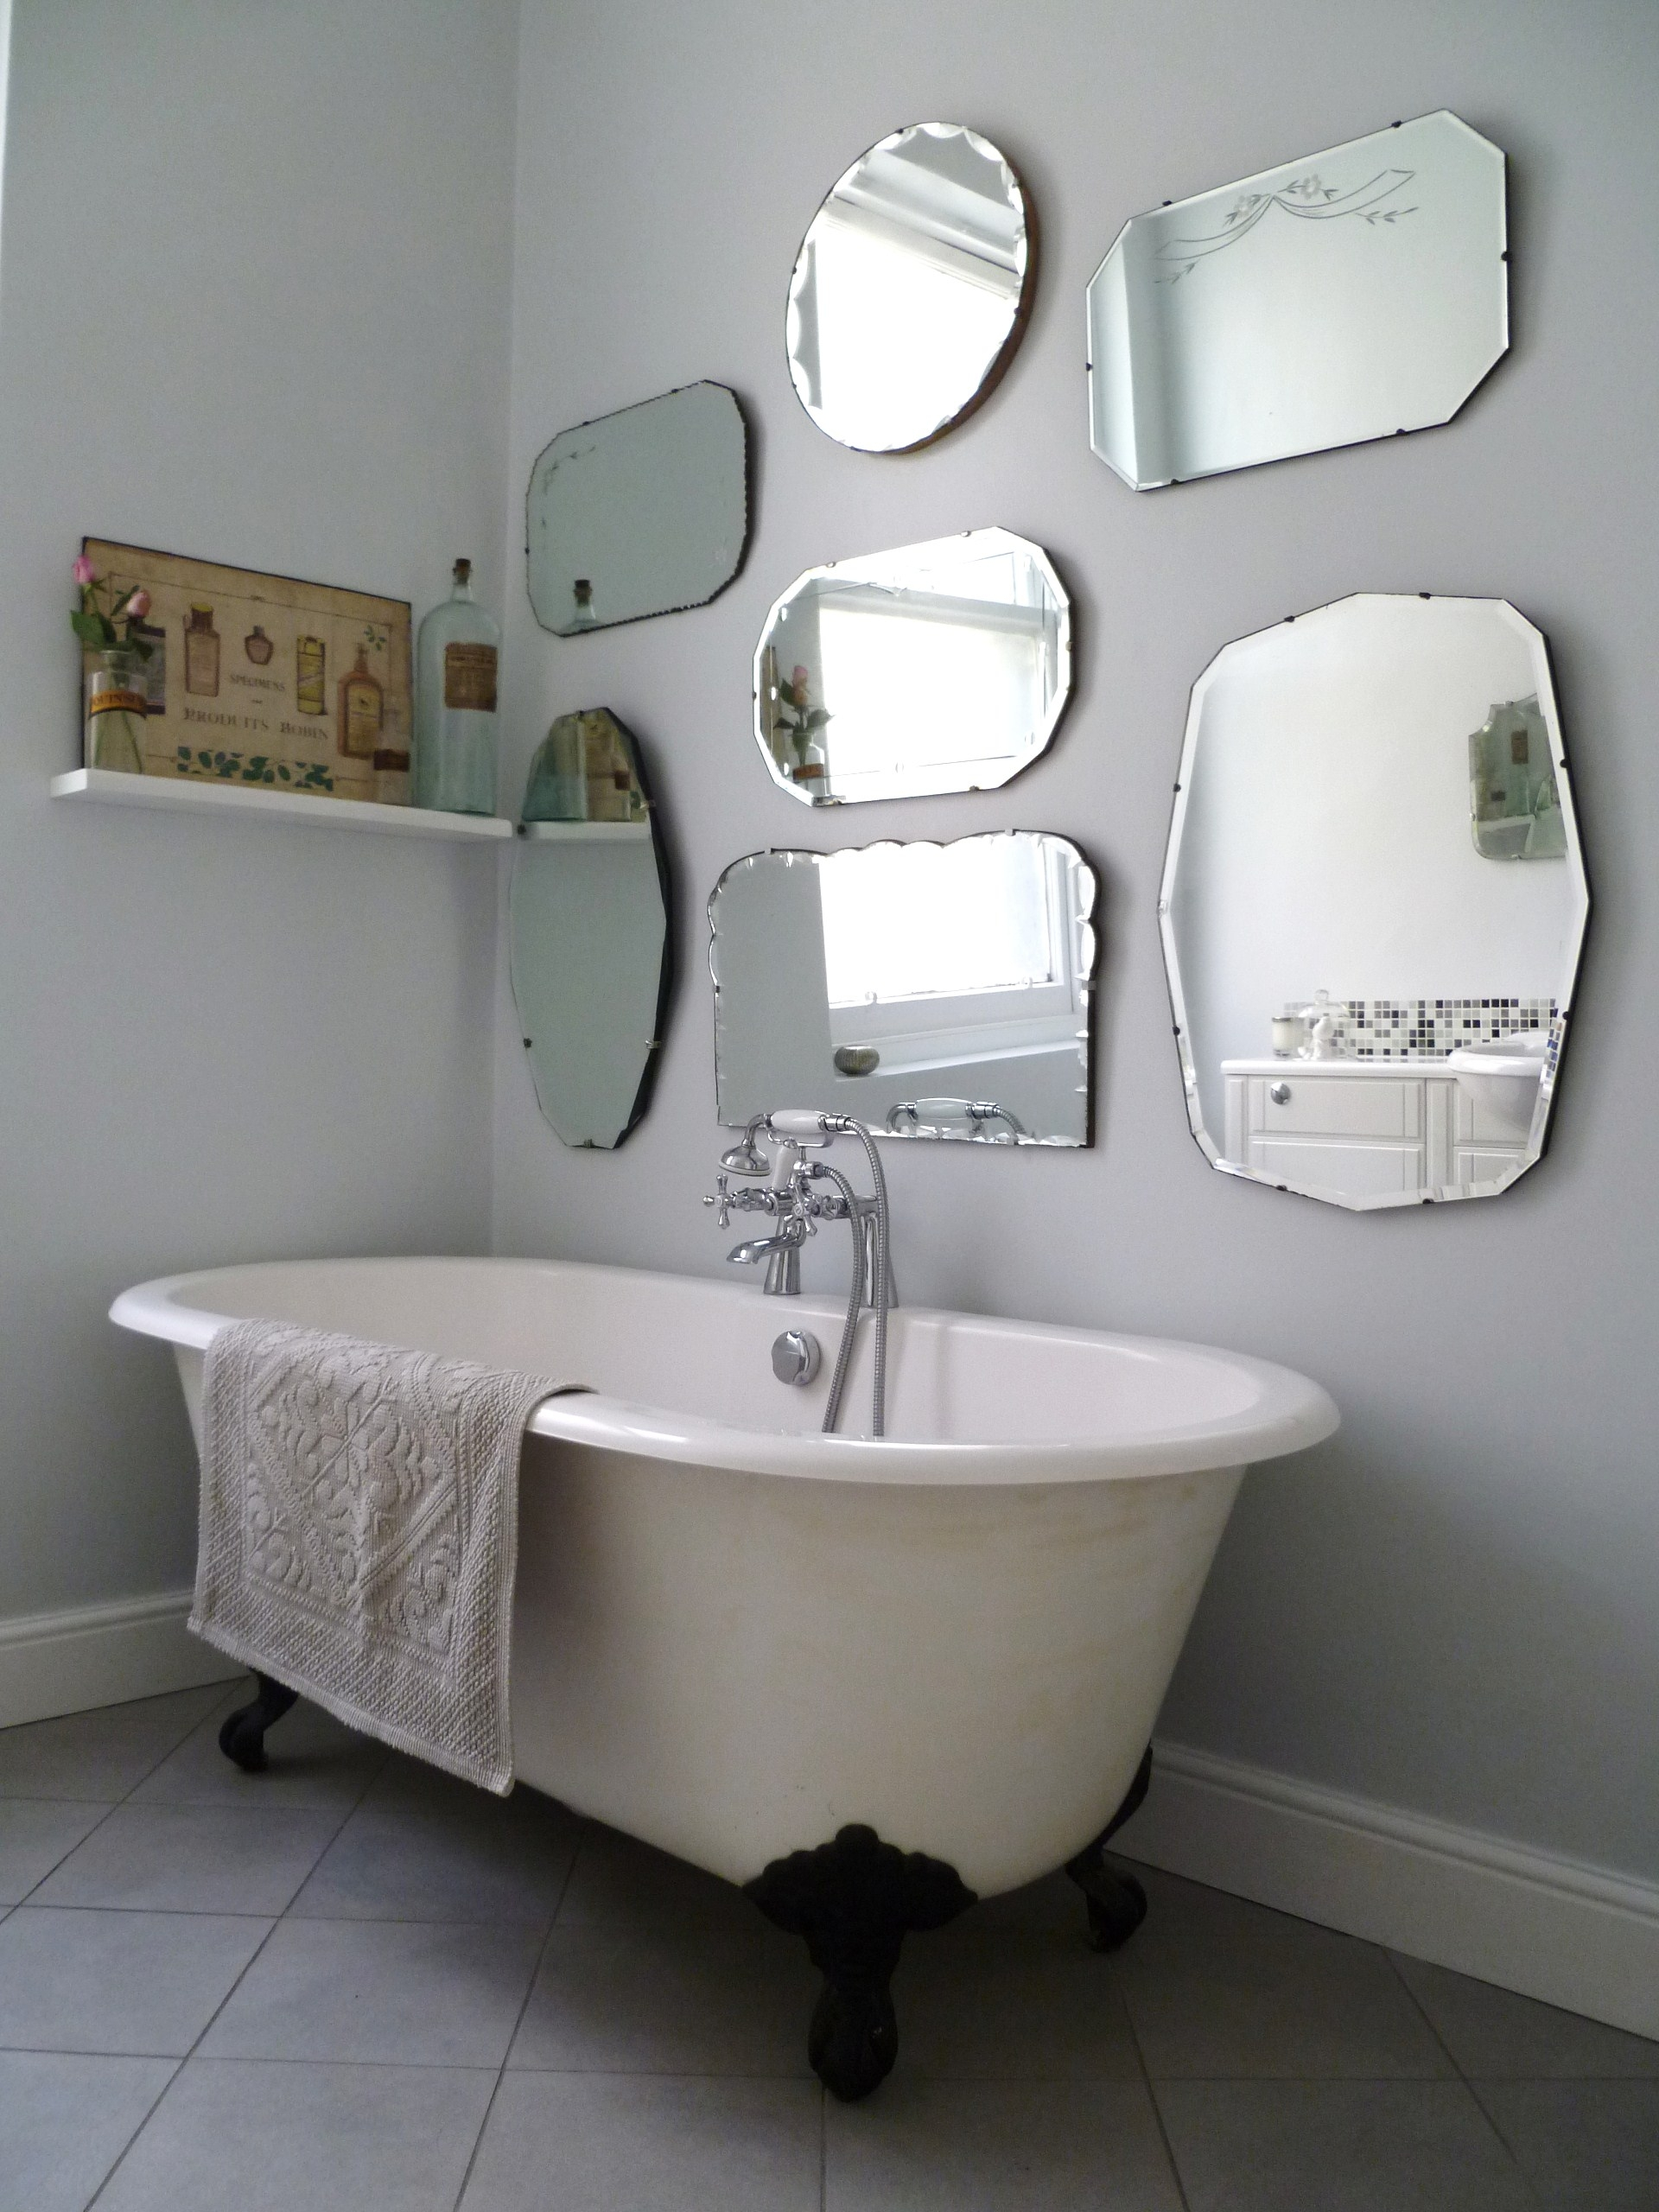 How To Hang A Display Of Vintage Mirrors Mirror Walls Grey And Pertaining To Antique Style Mirrors Wall (View 6 of 15)